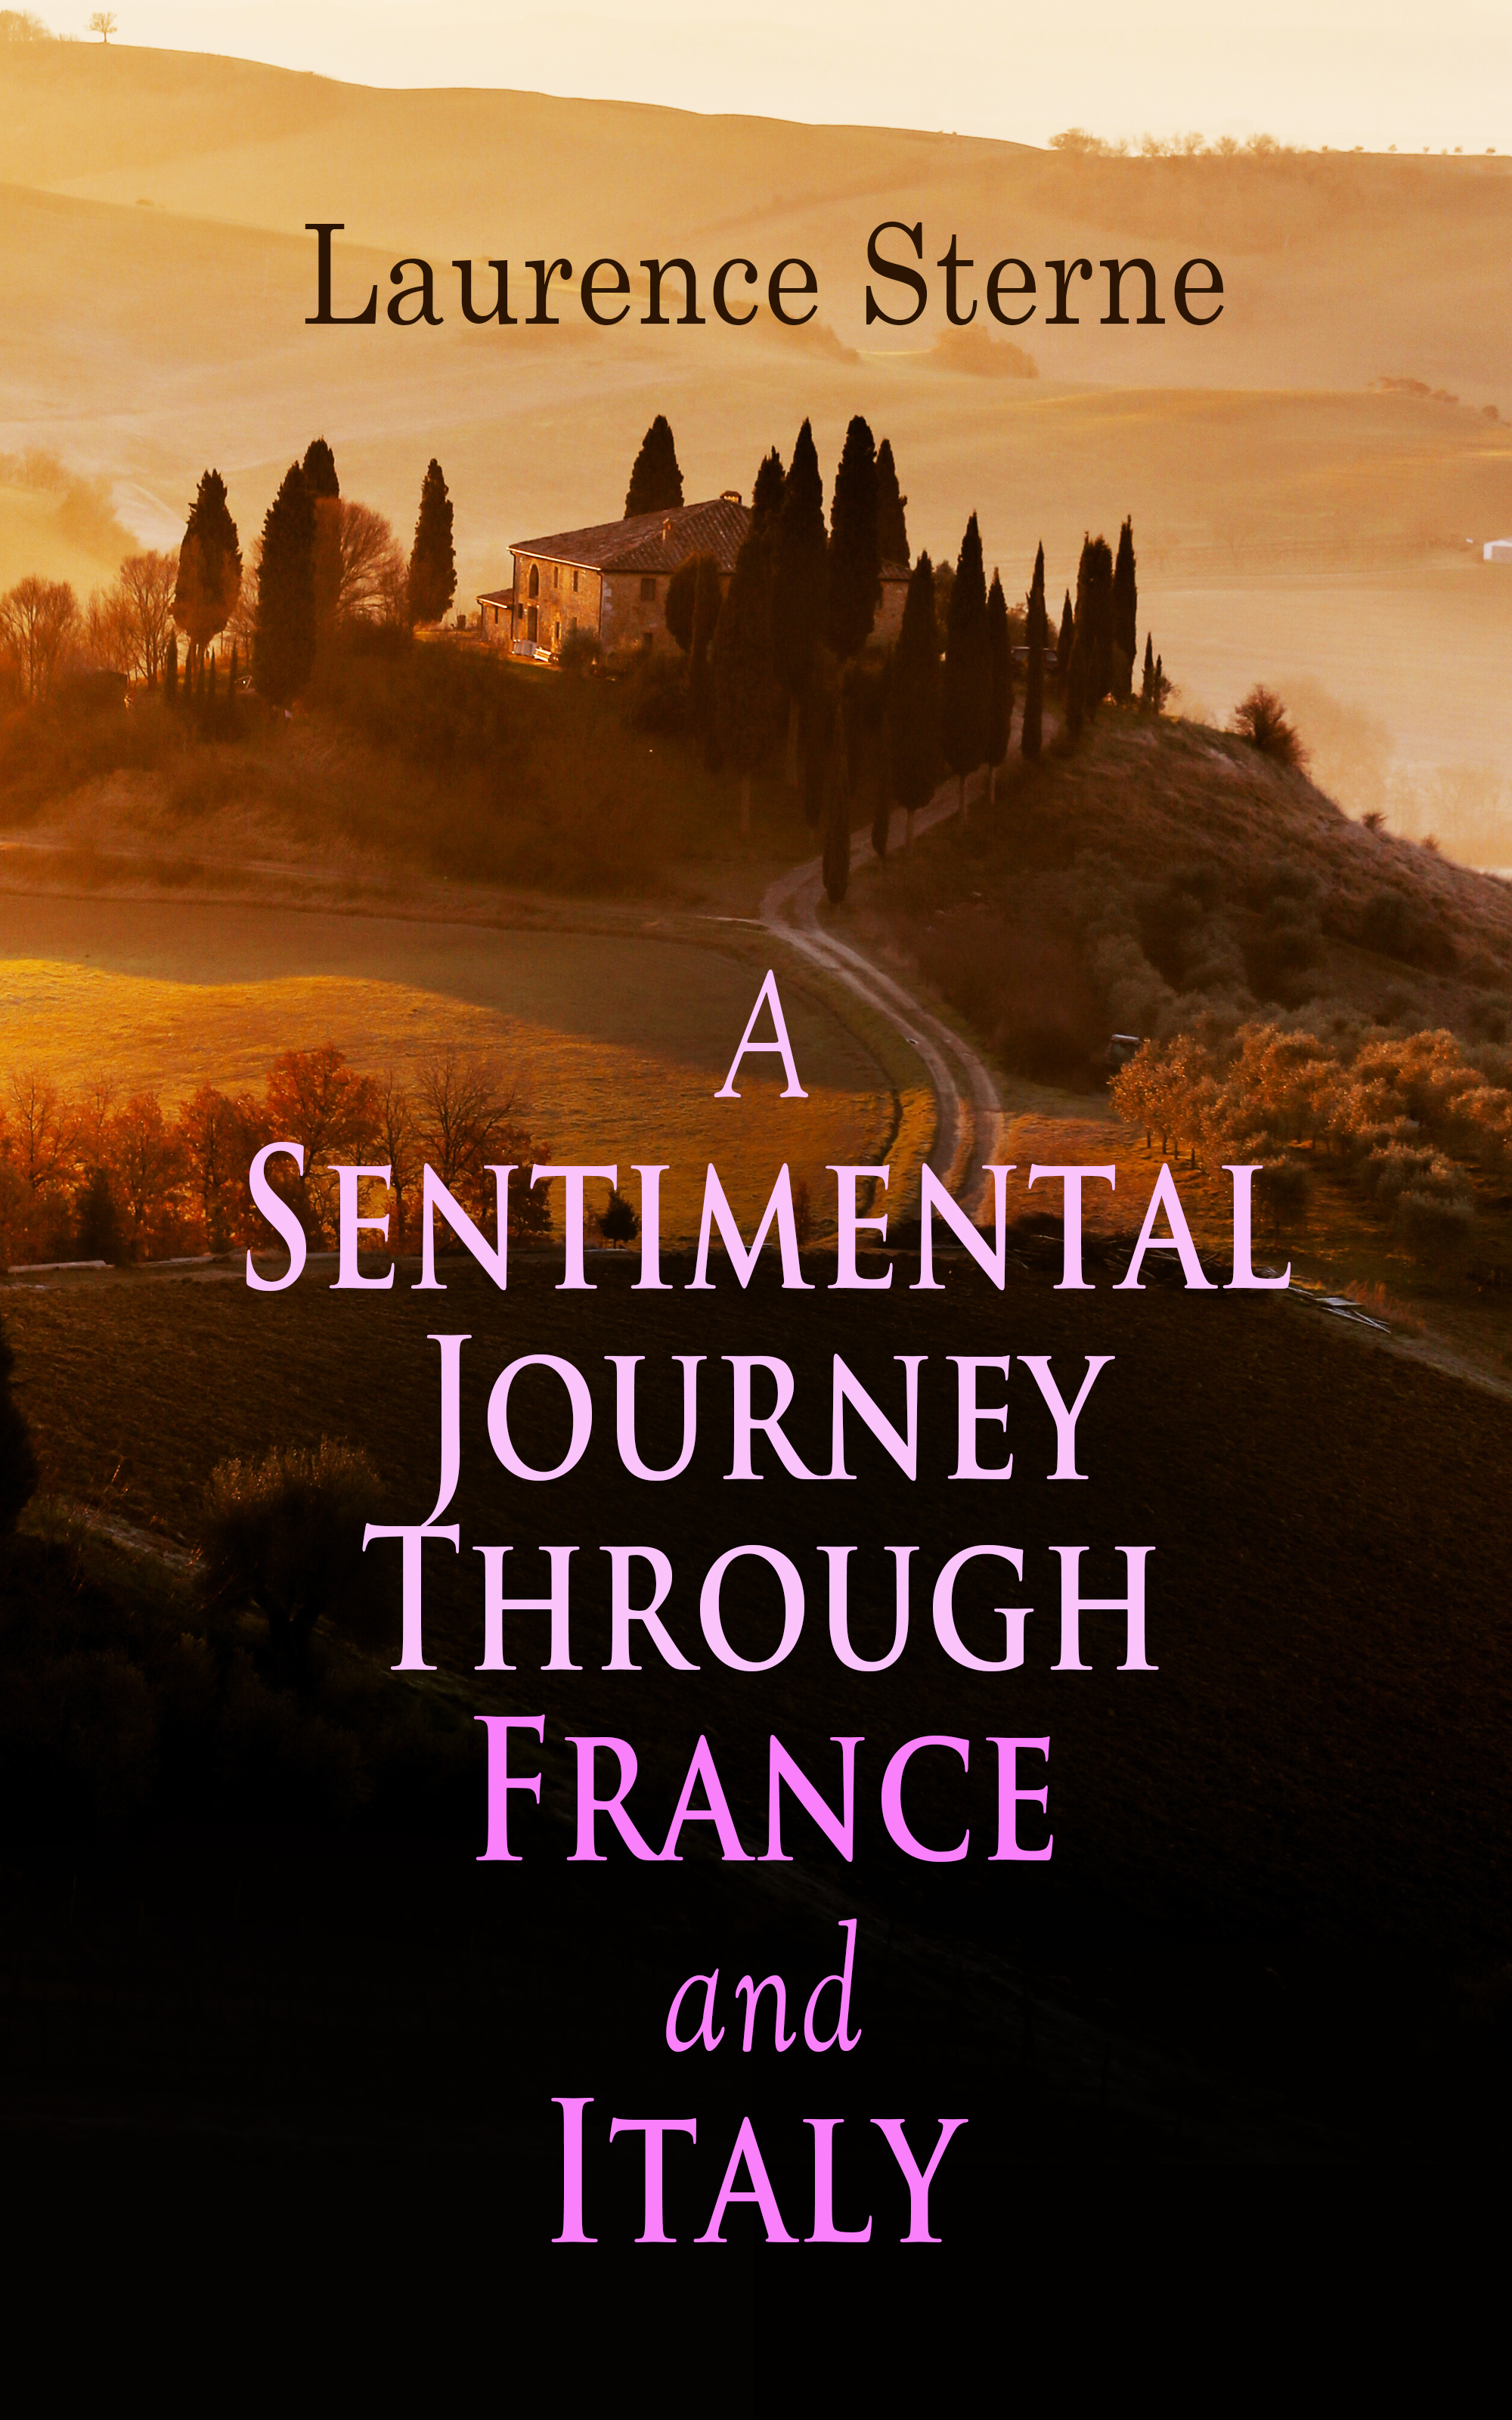 Лоренс Стерн A Sentimental Journey Through France and Italy гай лафитт guy lafitte blue and sentimental